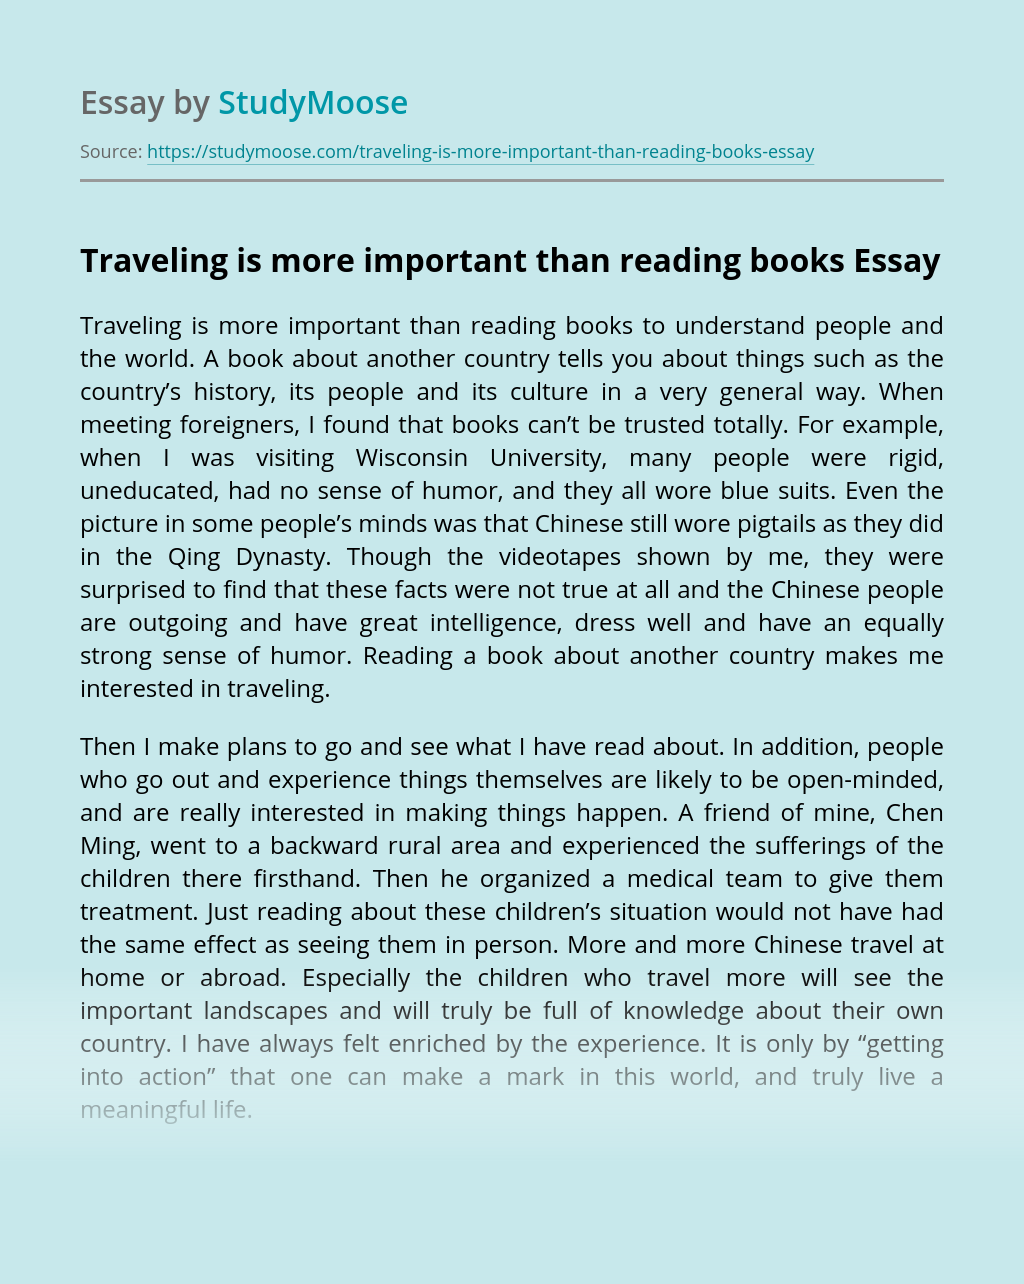 Traveling is more important than reading books